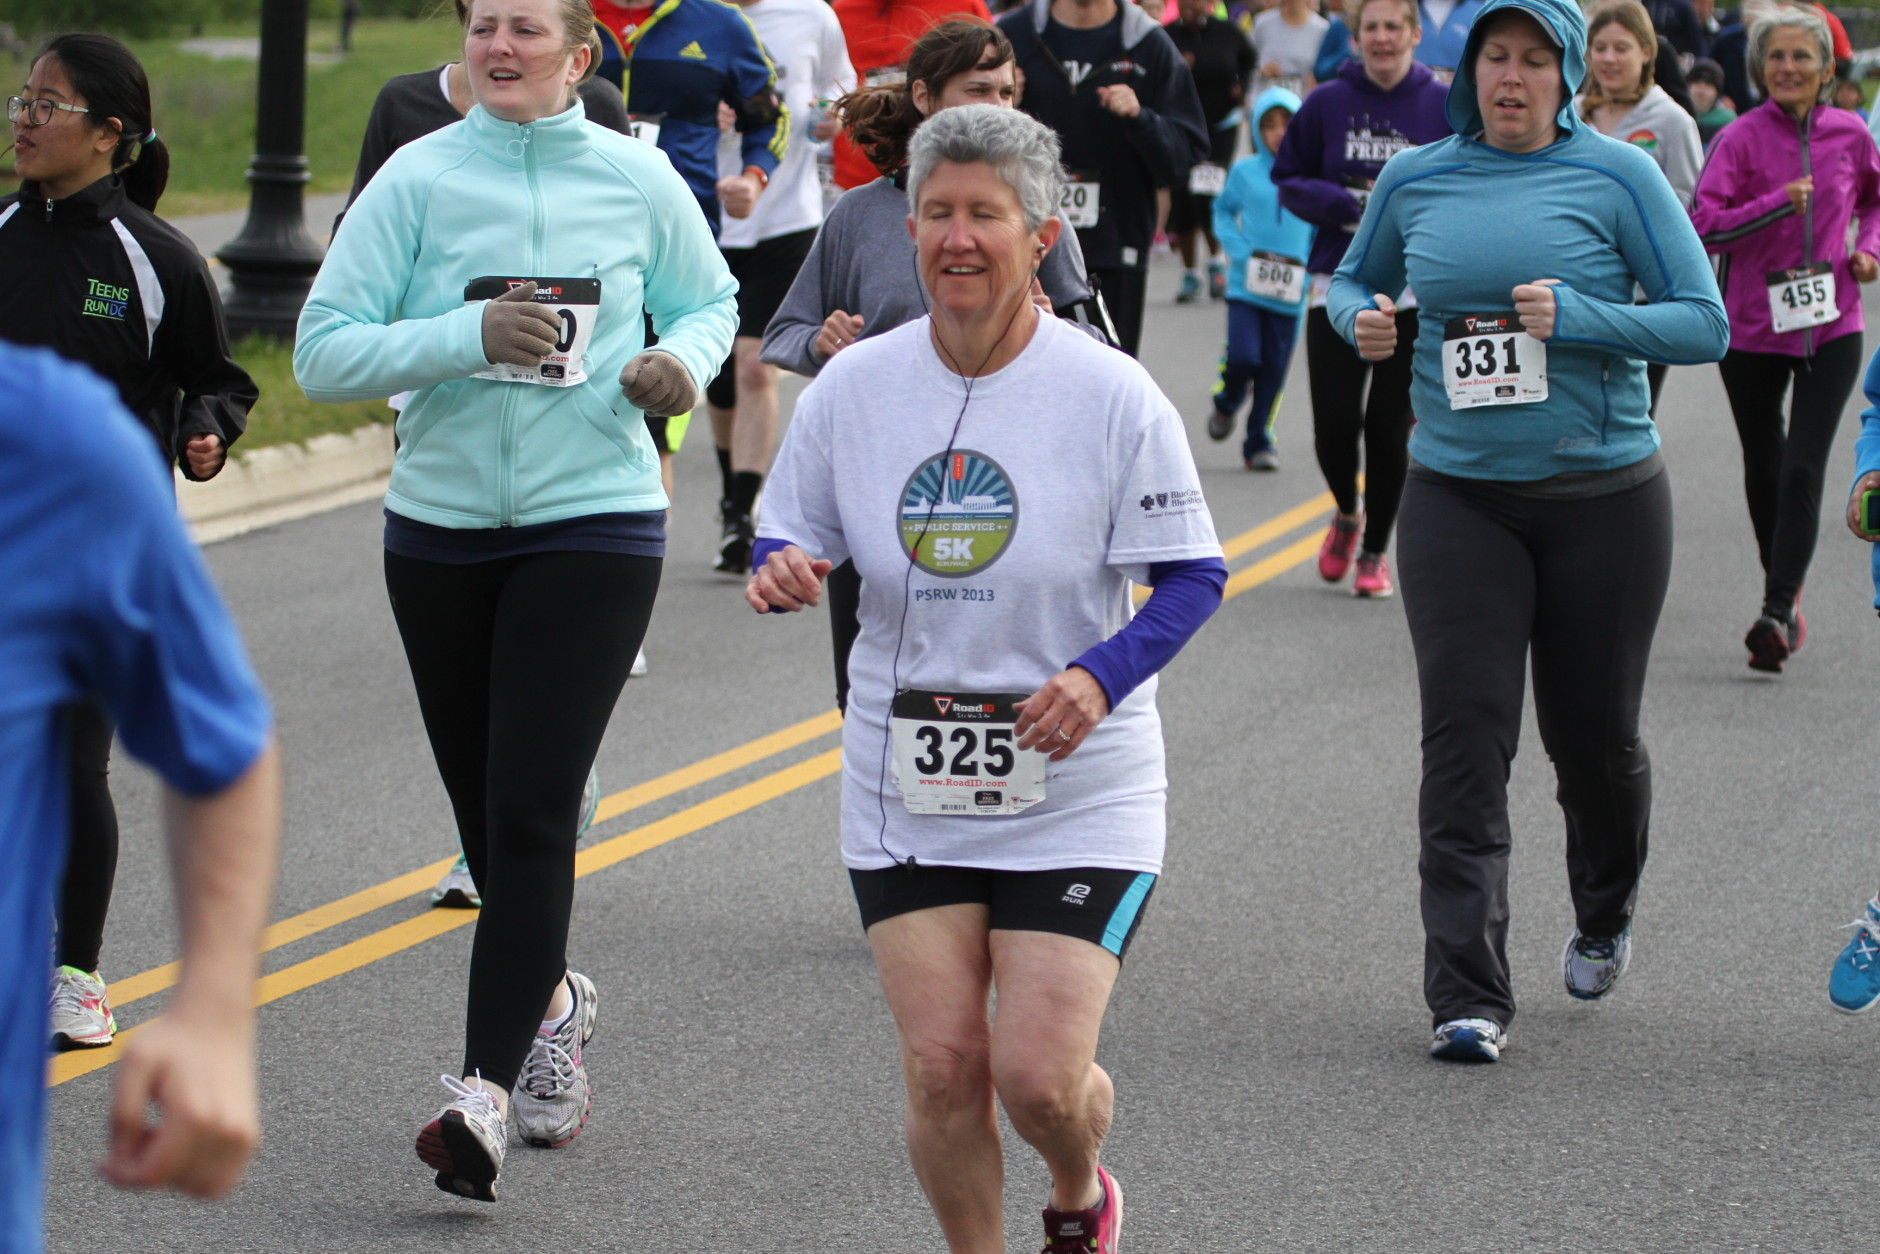 Public Service 5k Run/Walk raises $15K | Federal News Network